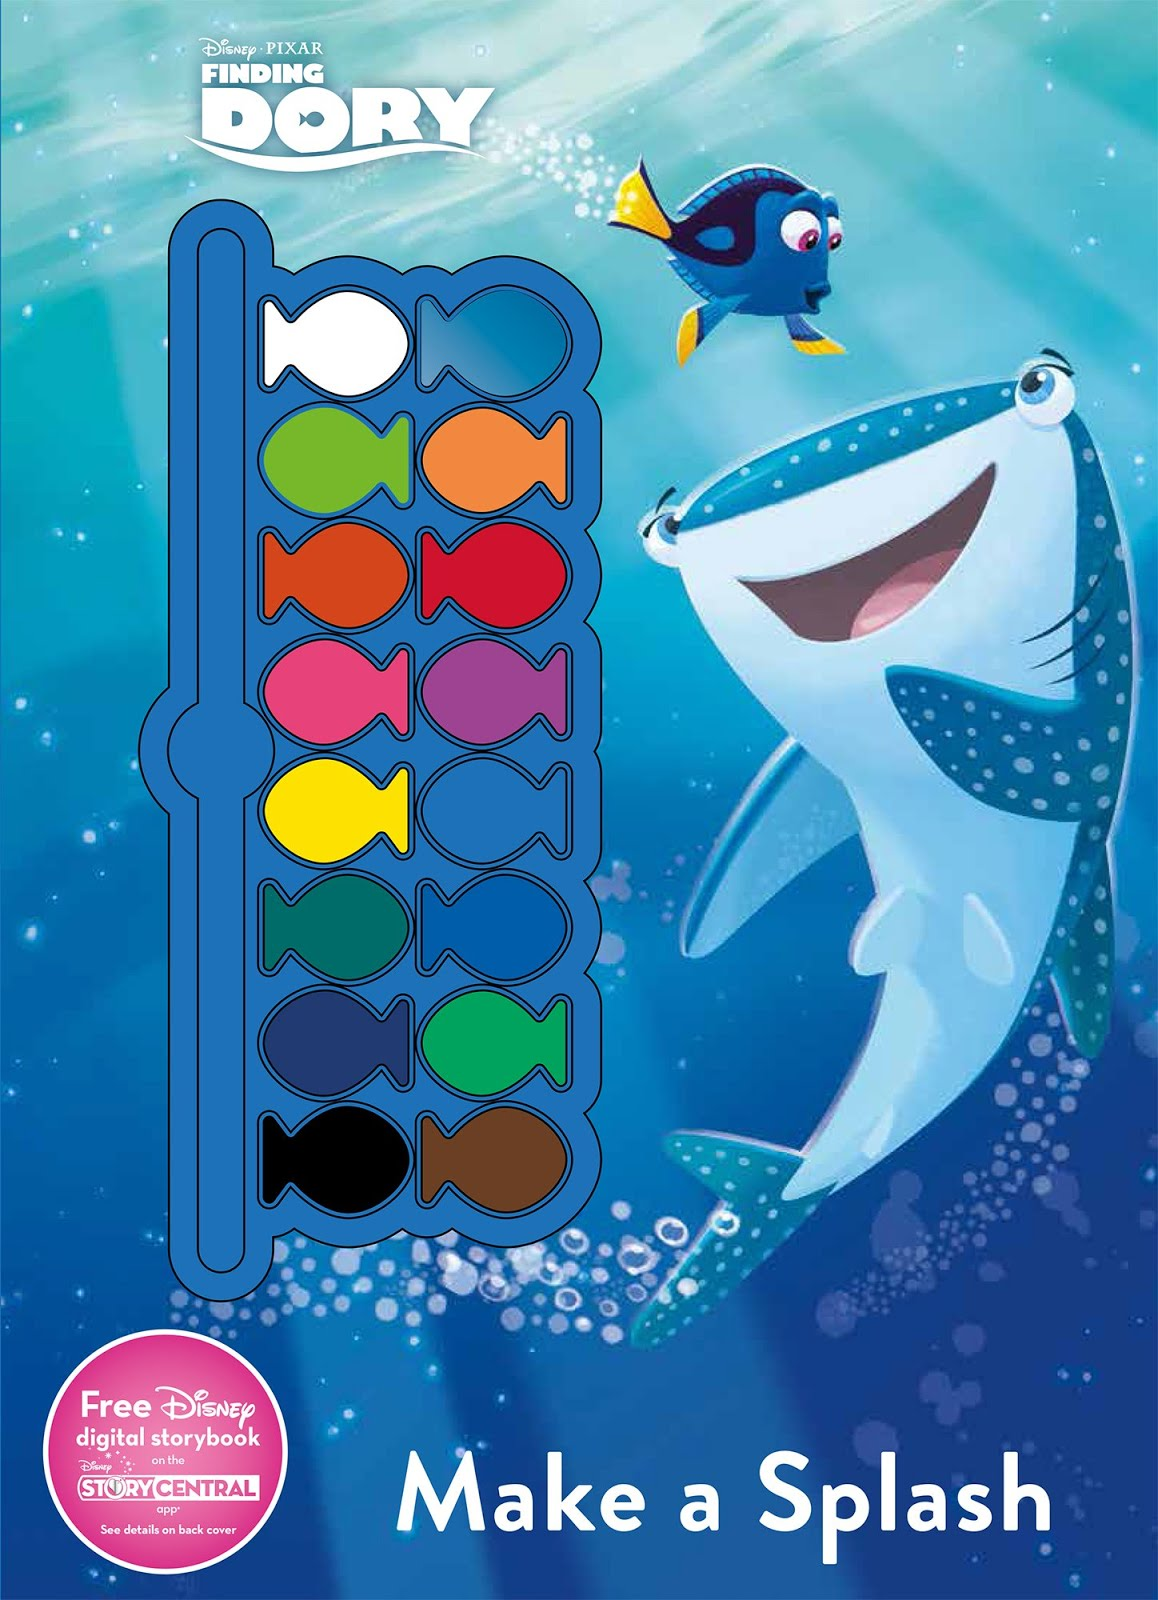 Finding Dory Story Books And Activity Books For Kids ~ Parenting Times